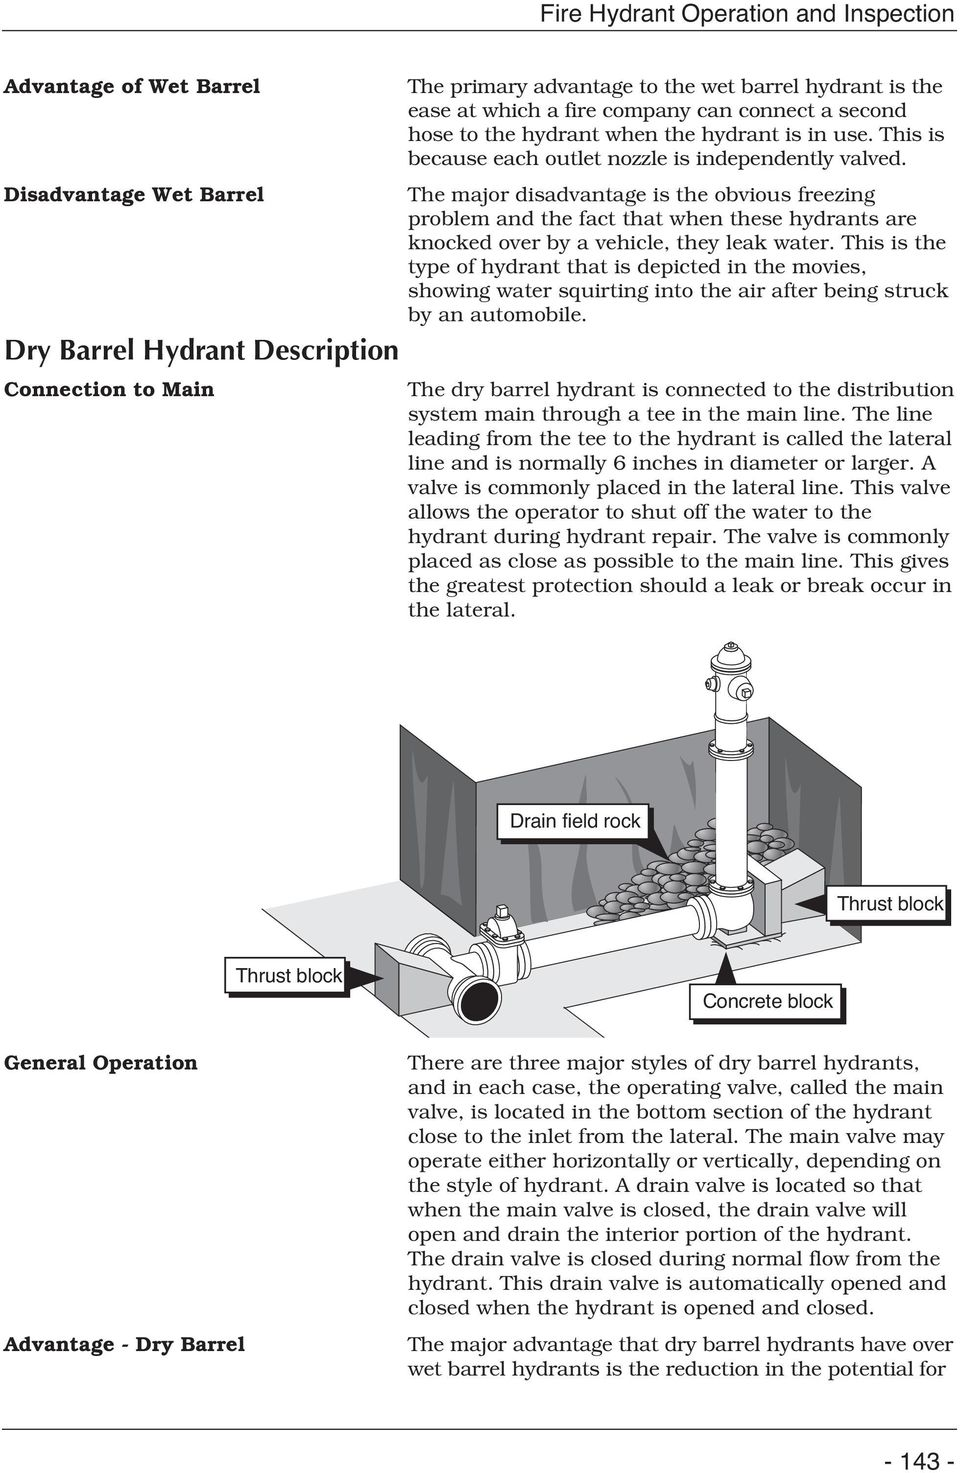 Fire hydrant: device and principle of operation, installation requirements 82